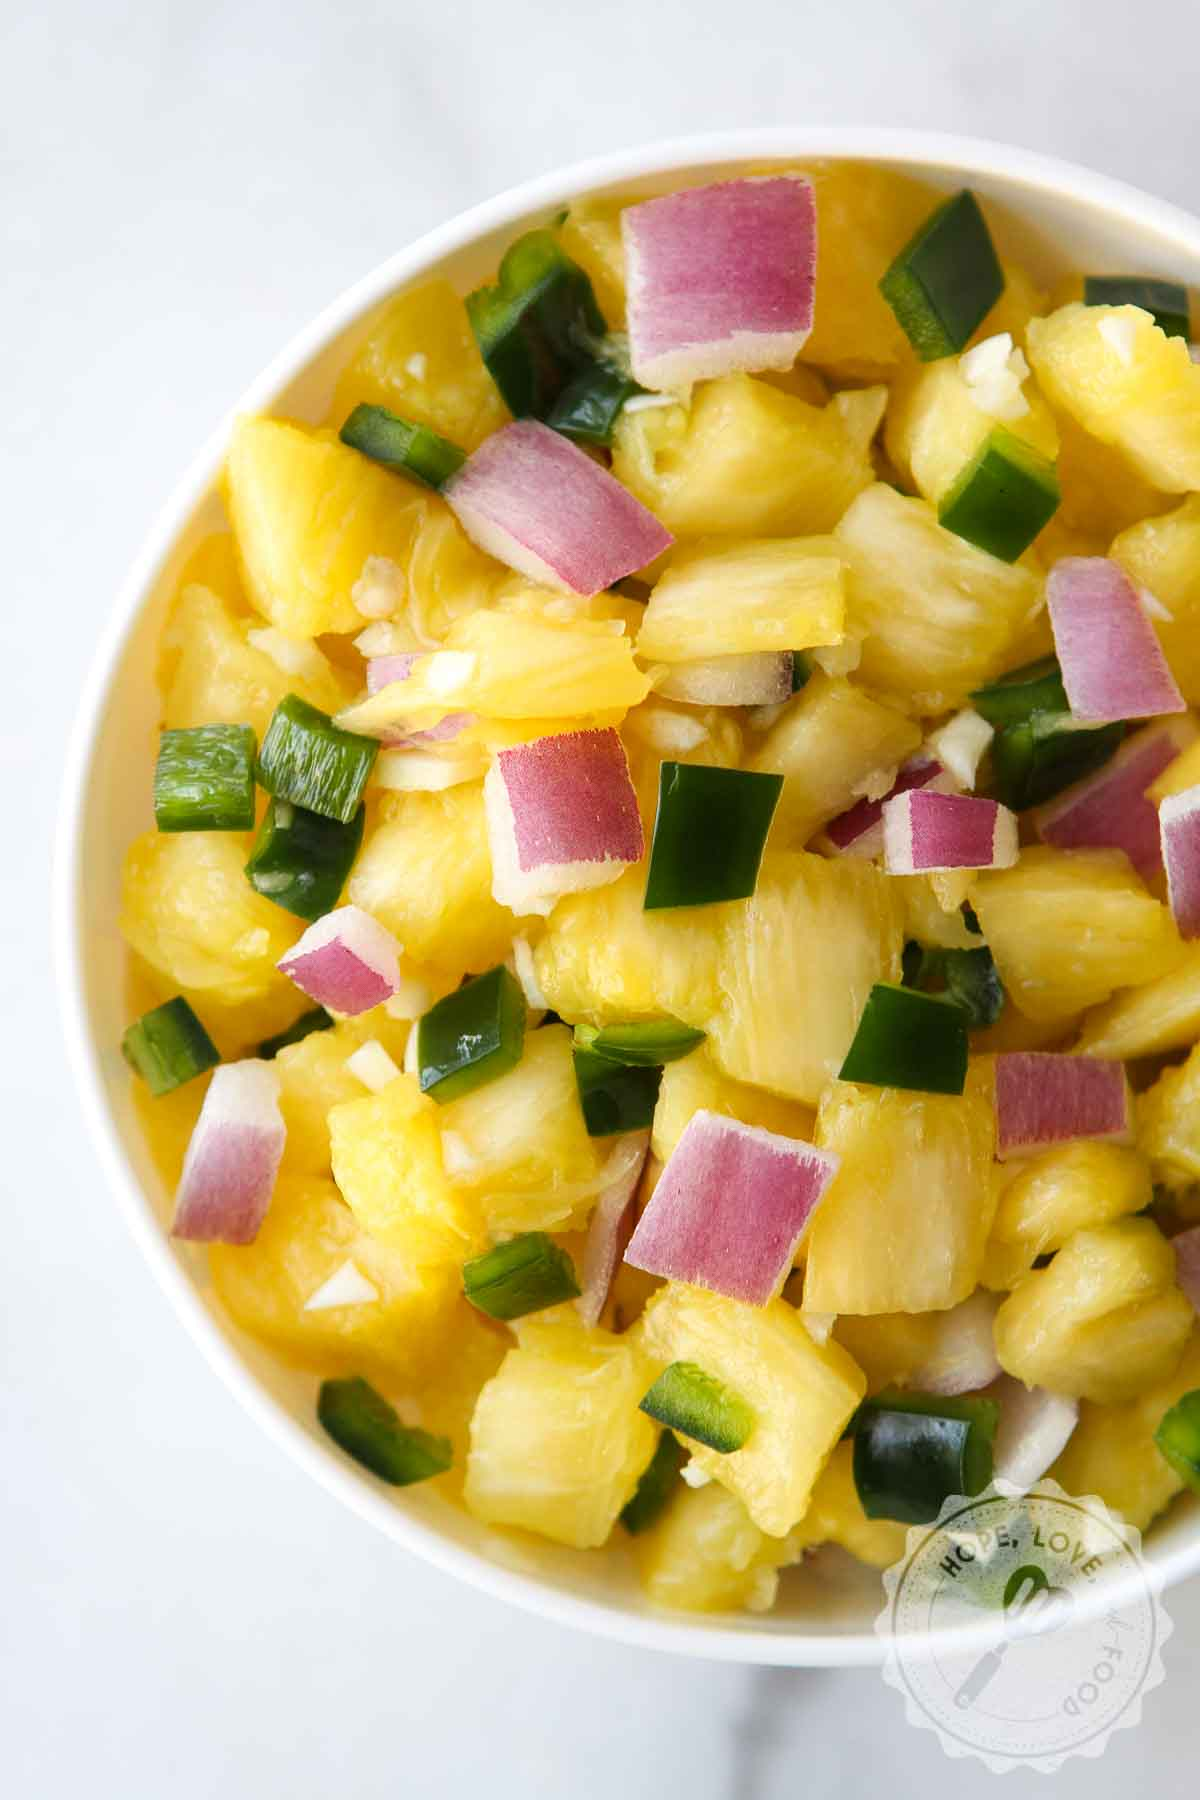 Pineapple poblano pepper salsa.